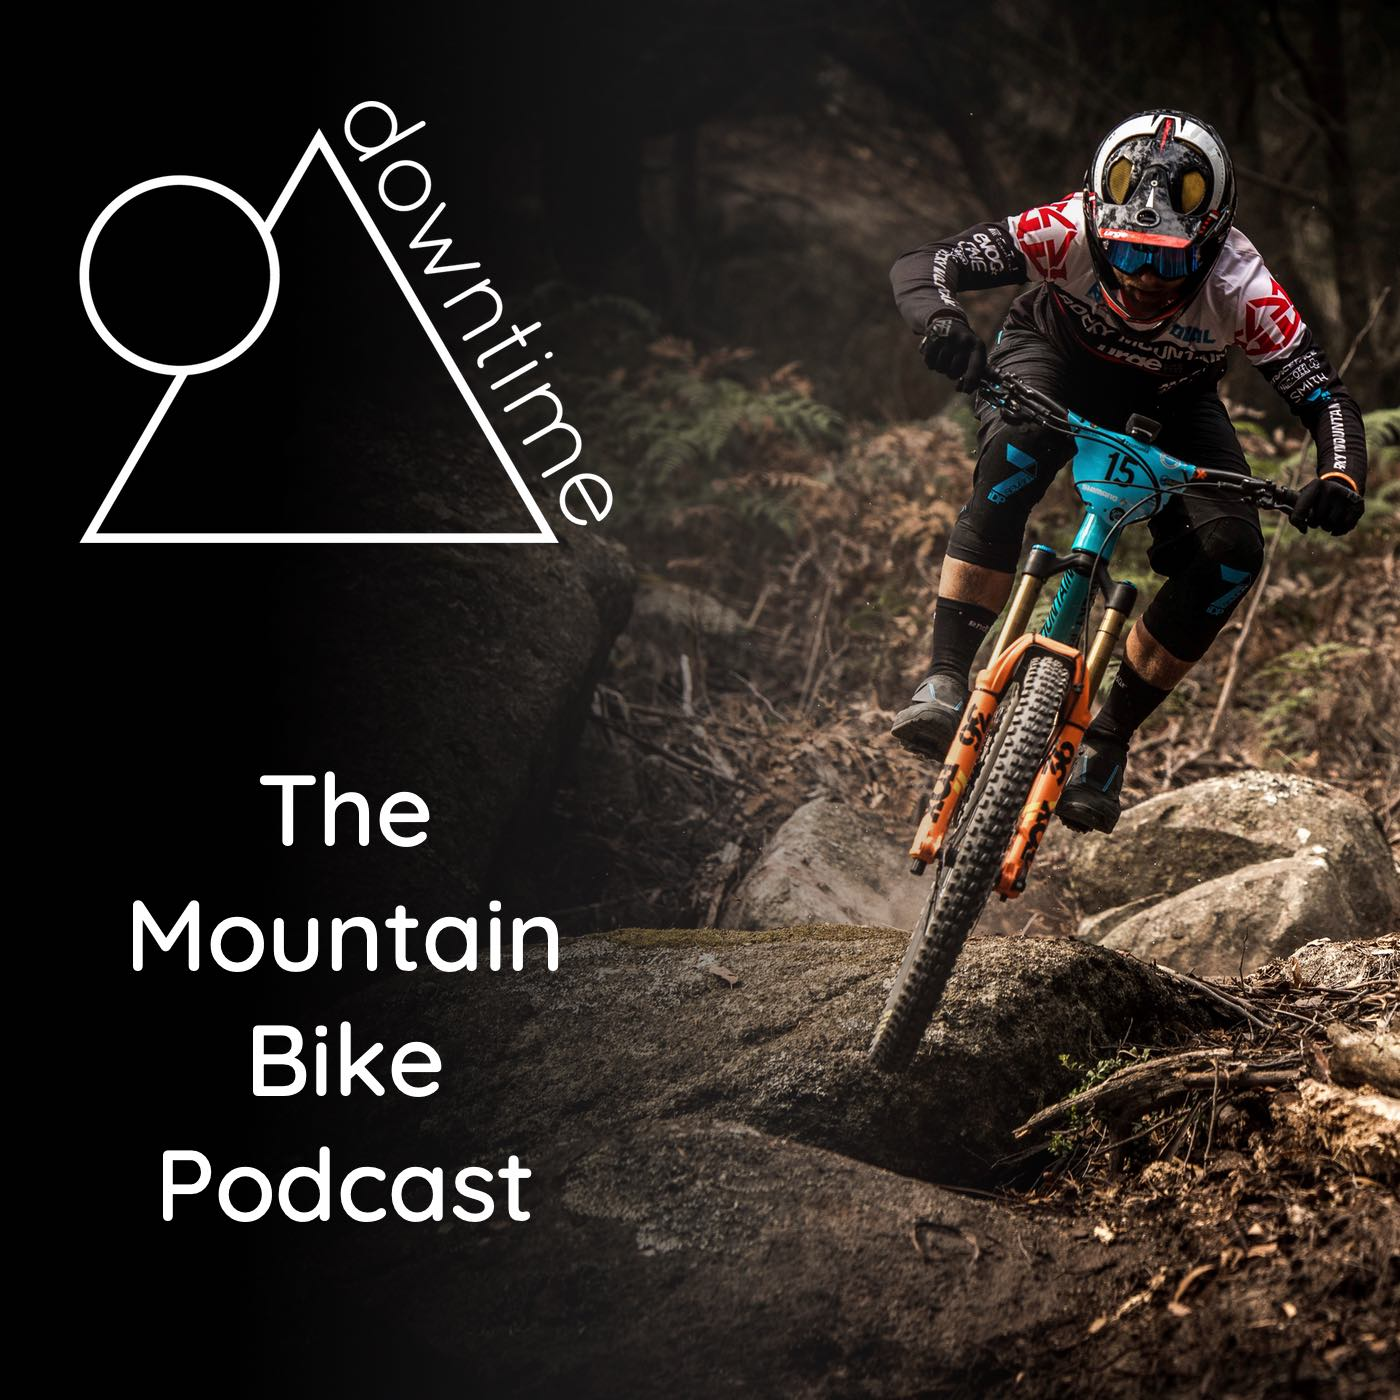 f46ce3c0ee5a0  Downtime - The Mountain Bike Podcast on Apple Podcasts